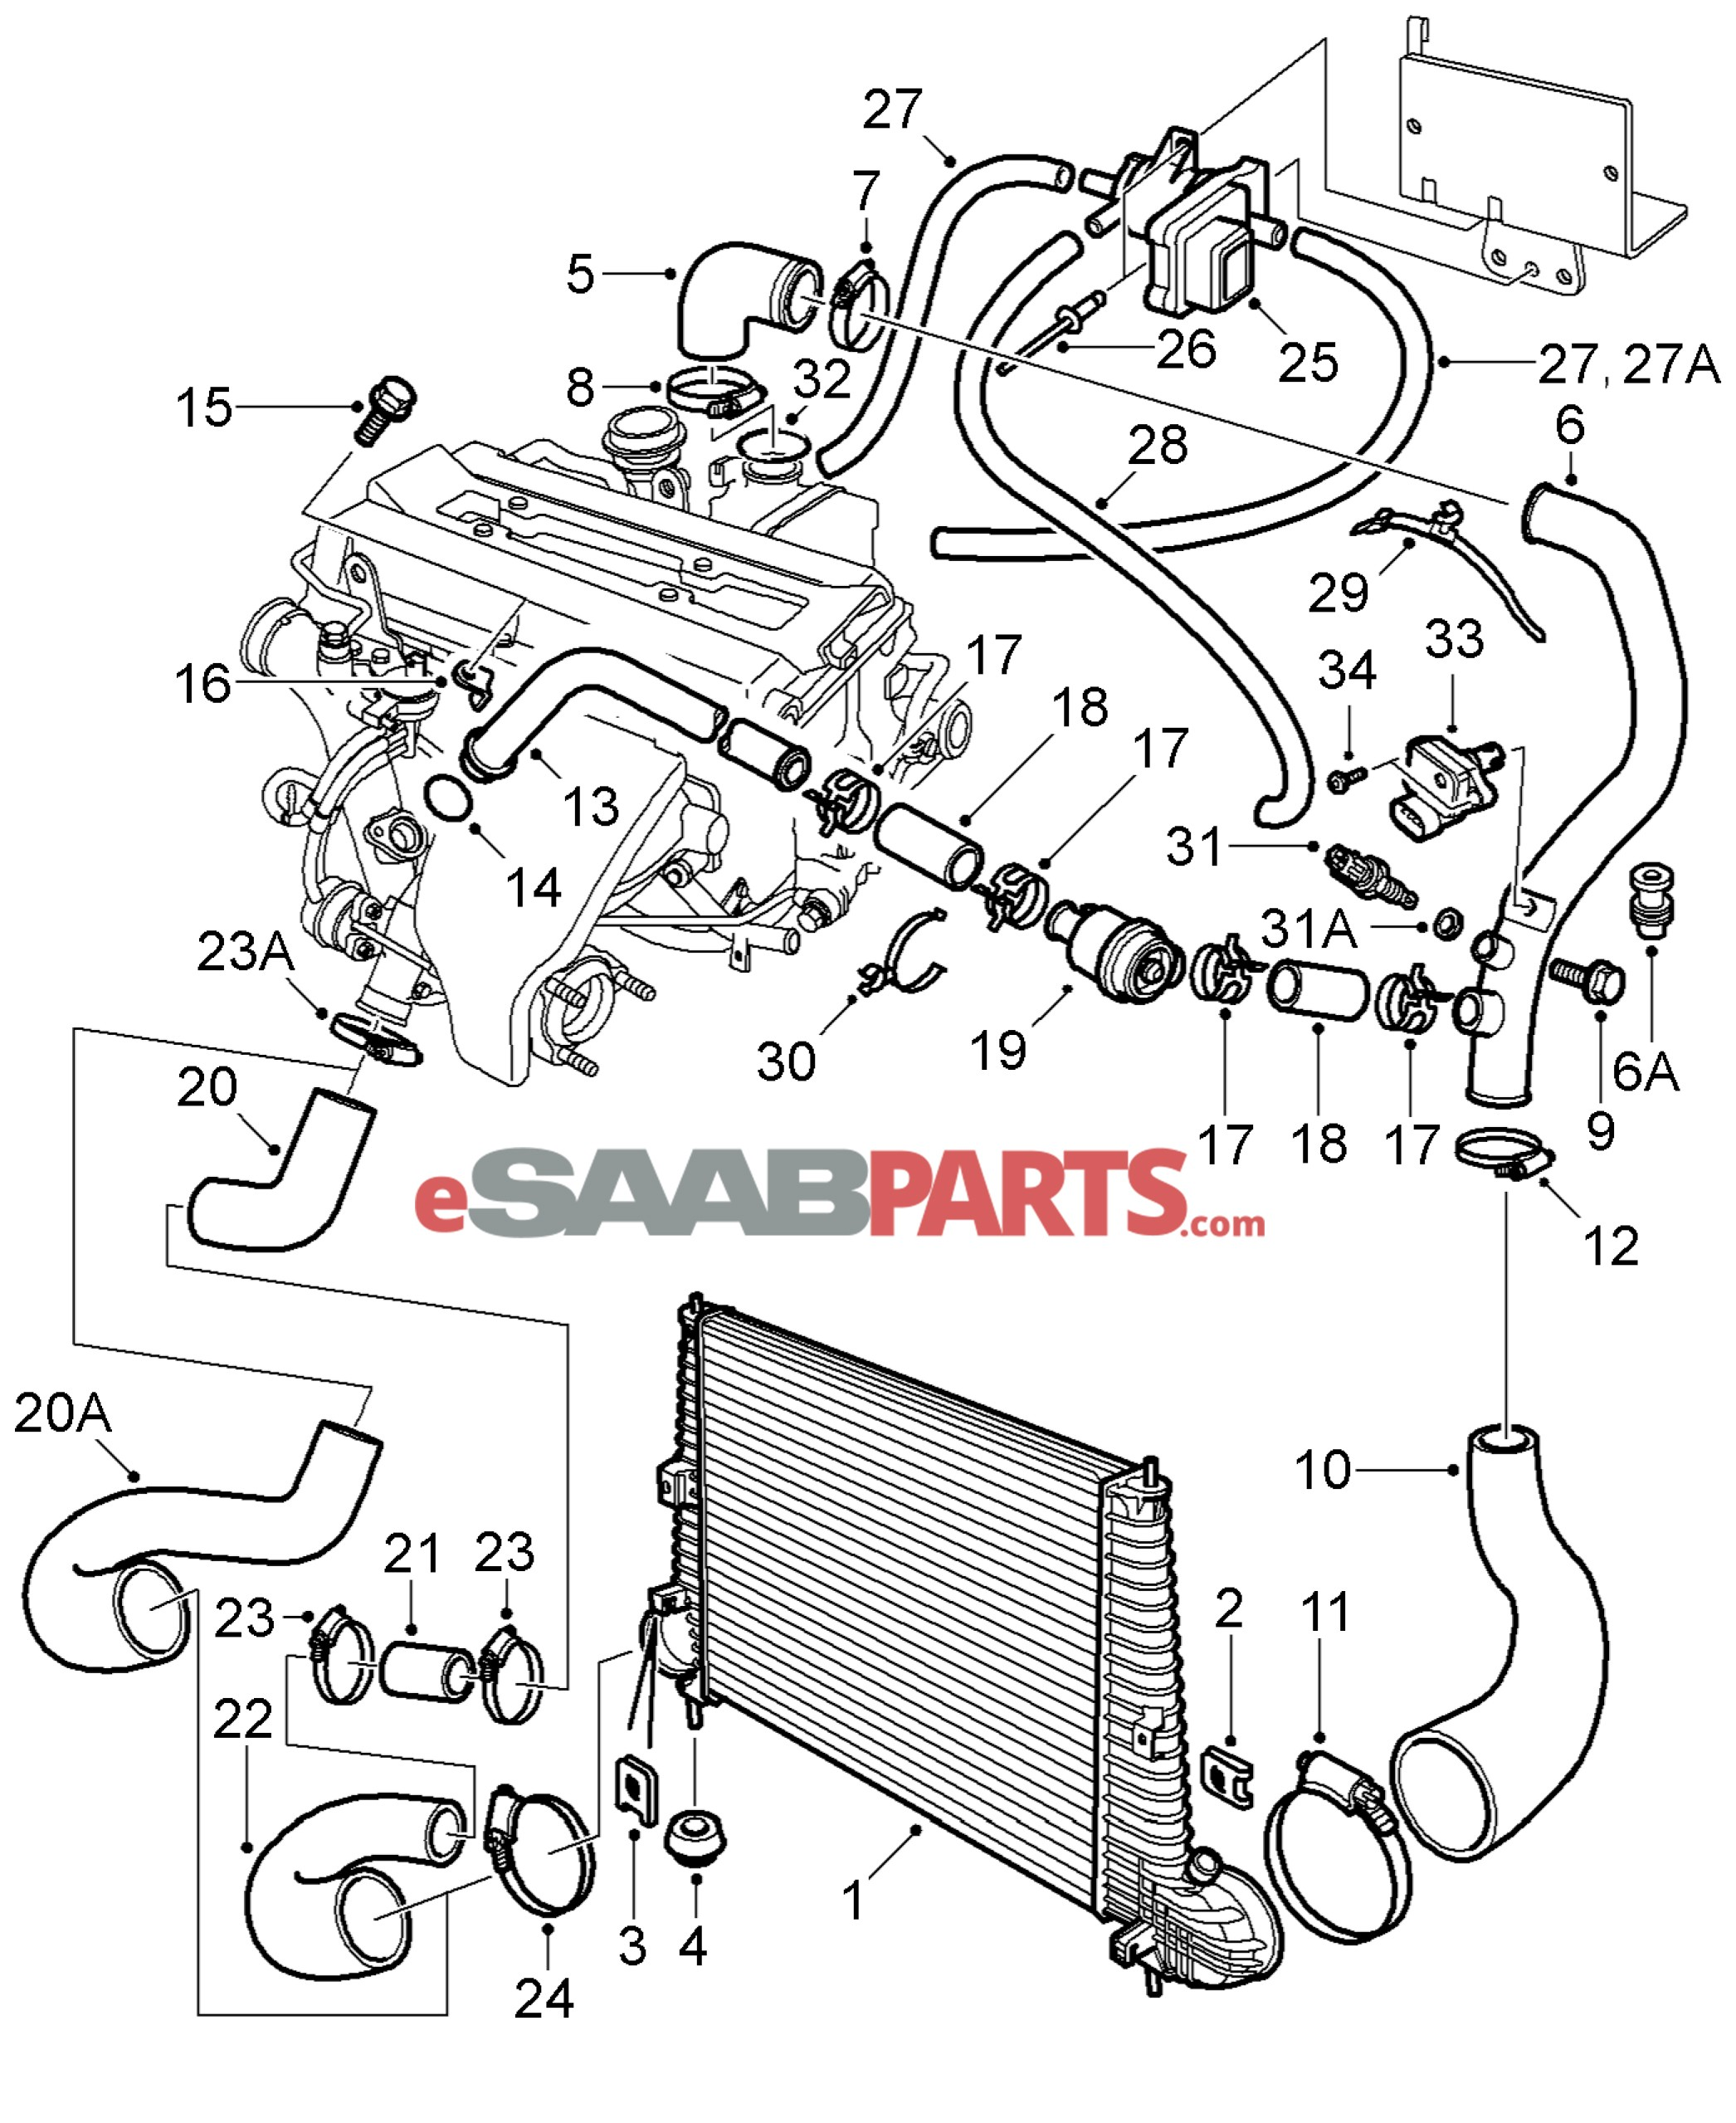 03 Saab 9 3 Engine Diagram